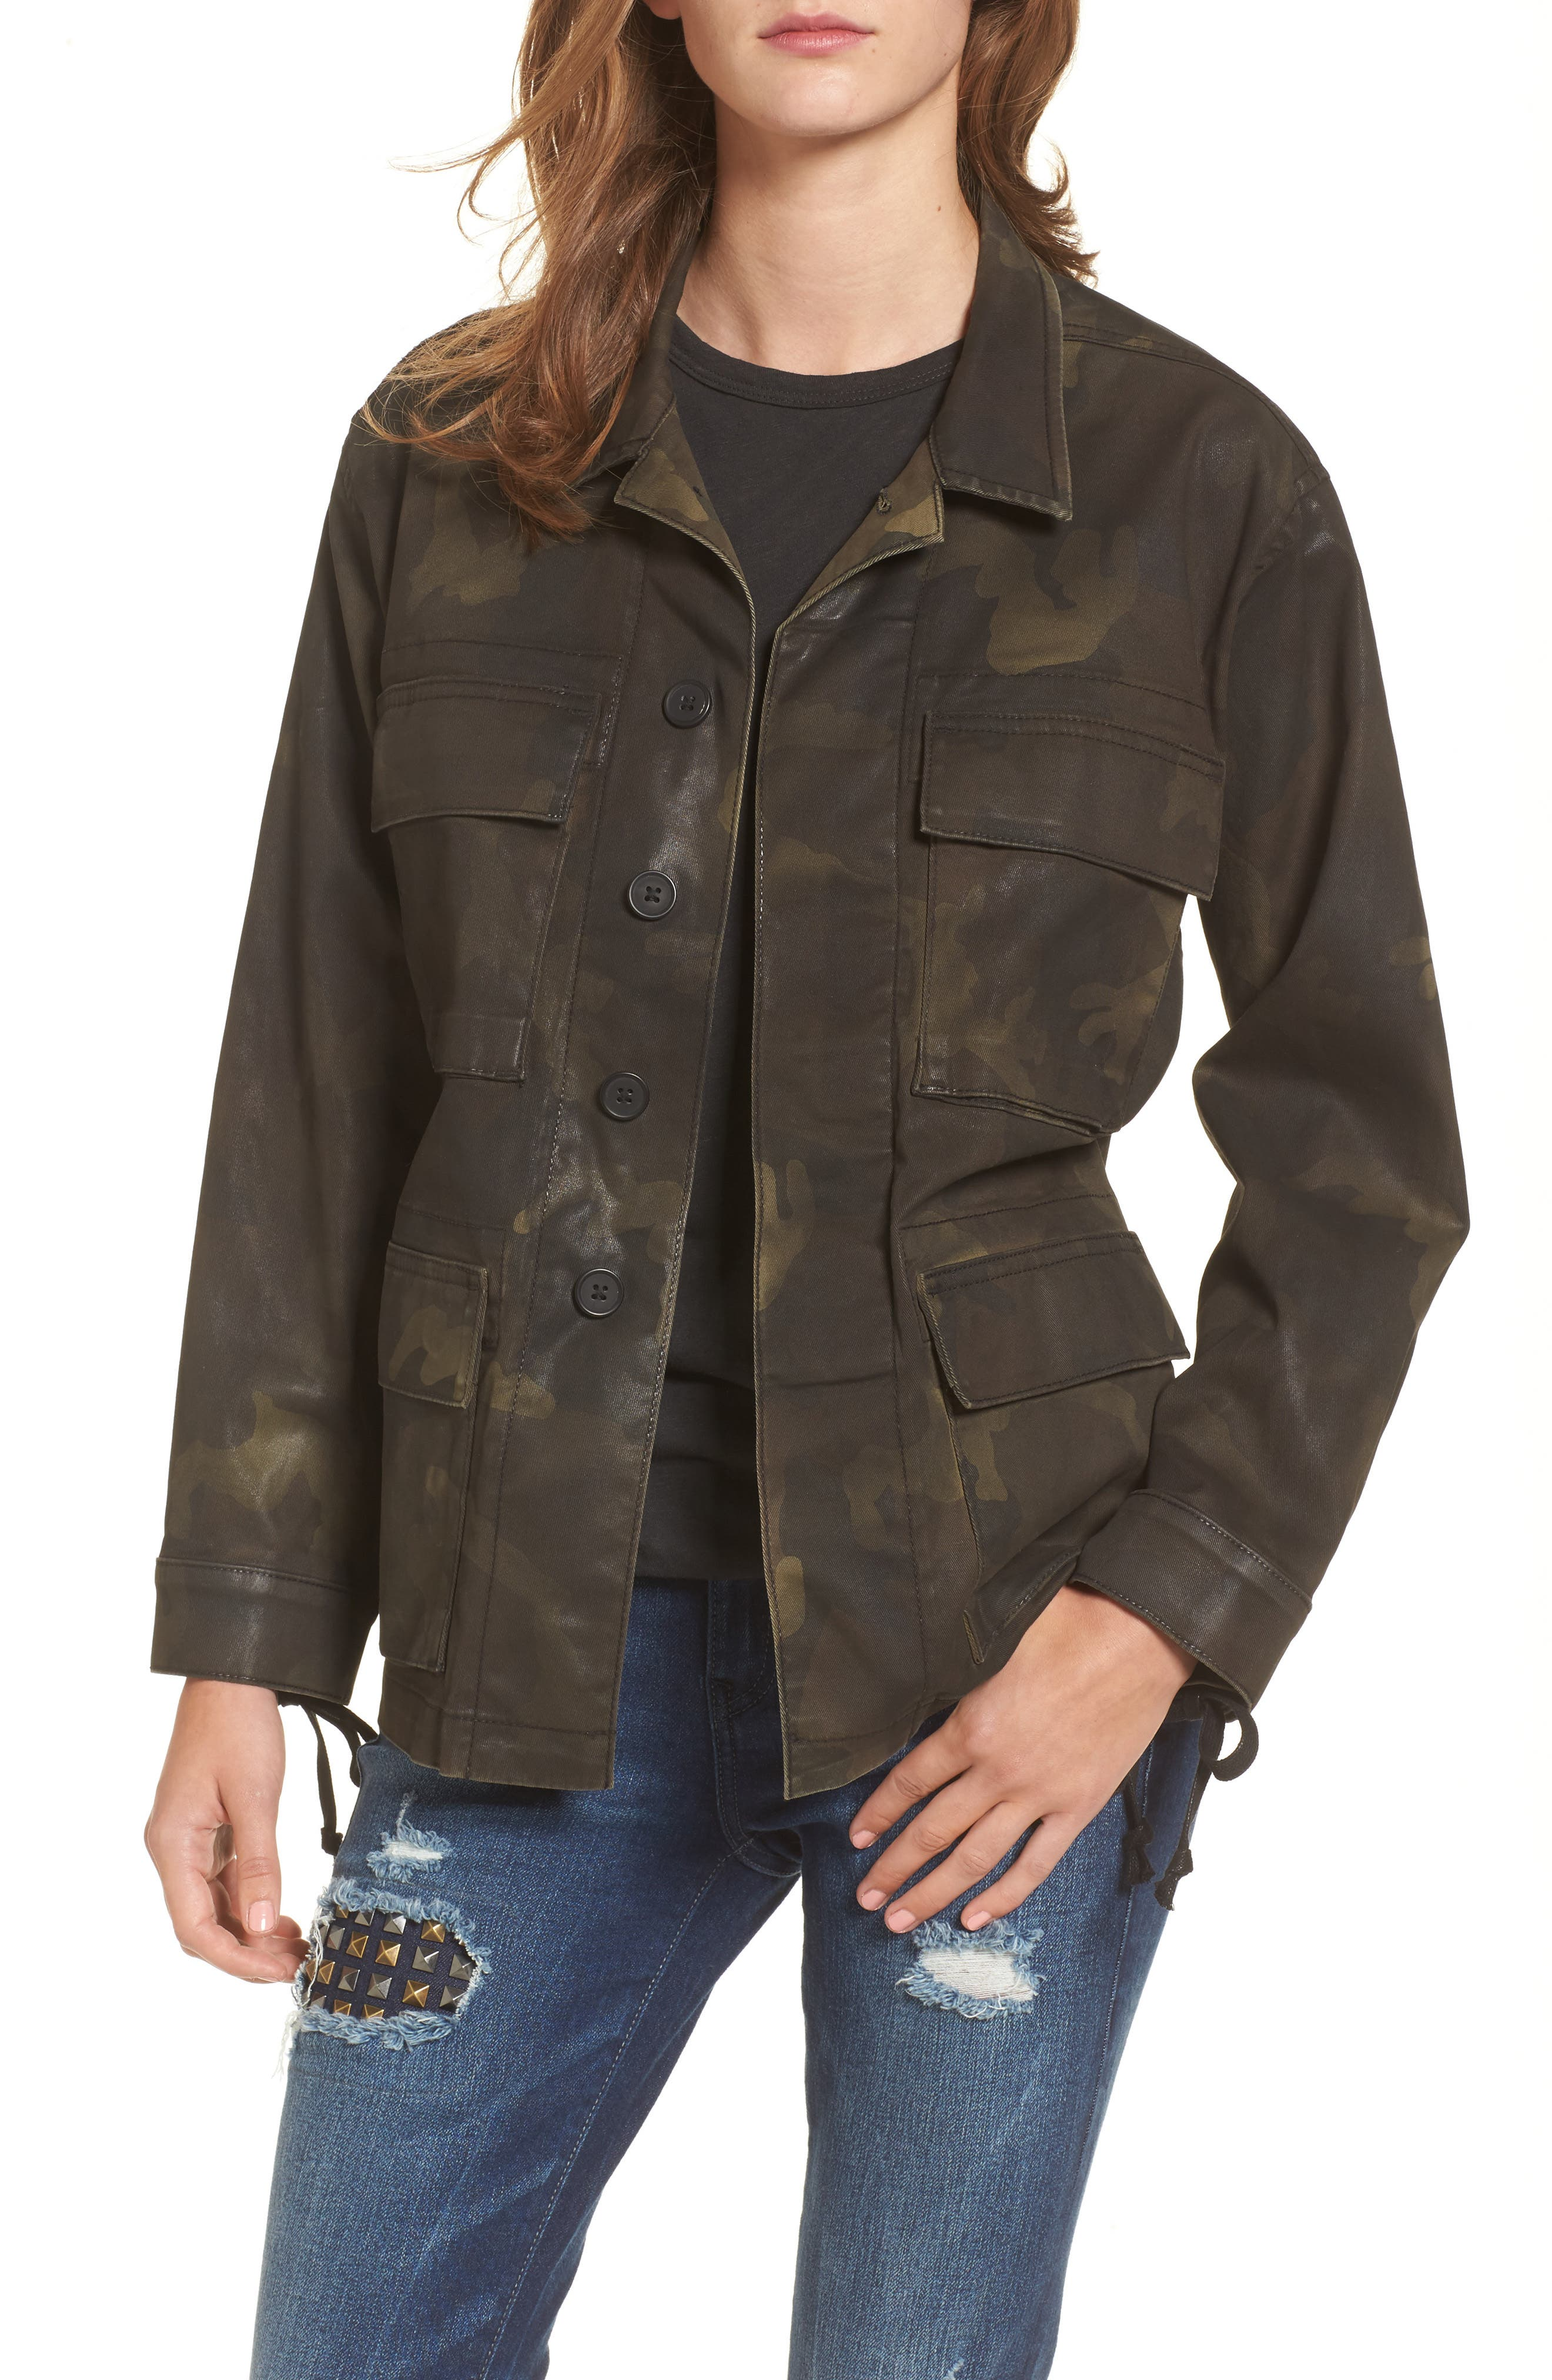 TRUE RELIGION BRAND JEANS Coated Military Jacket, Main, color, 300